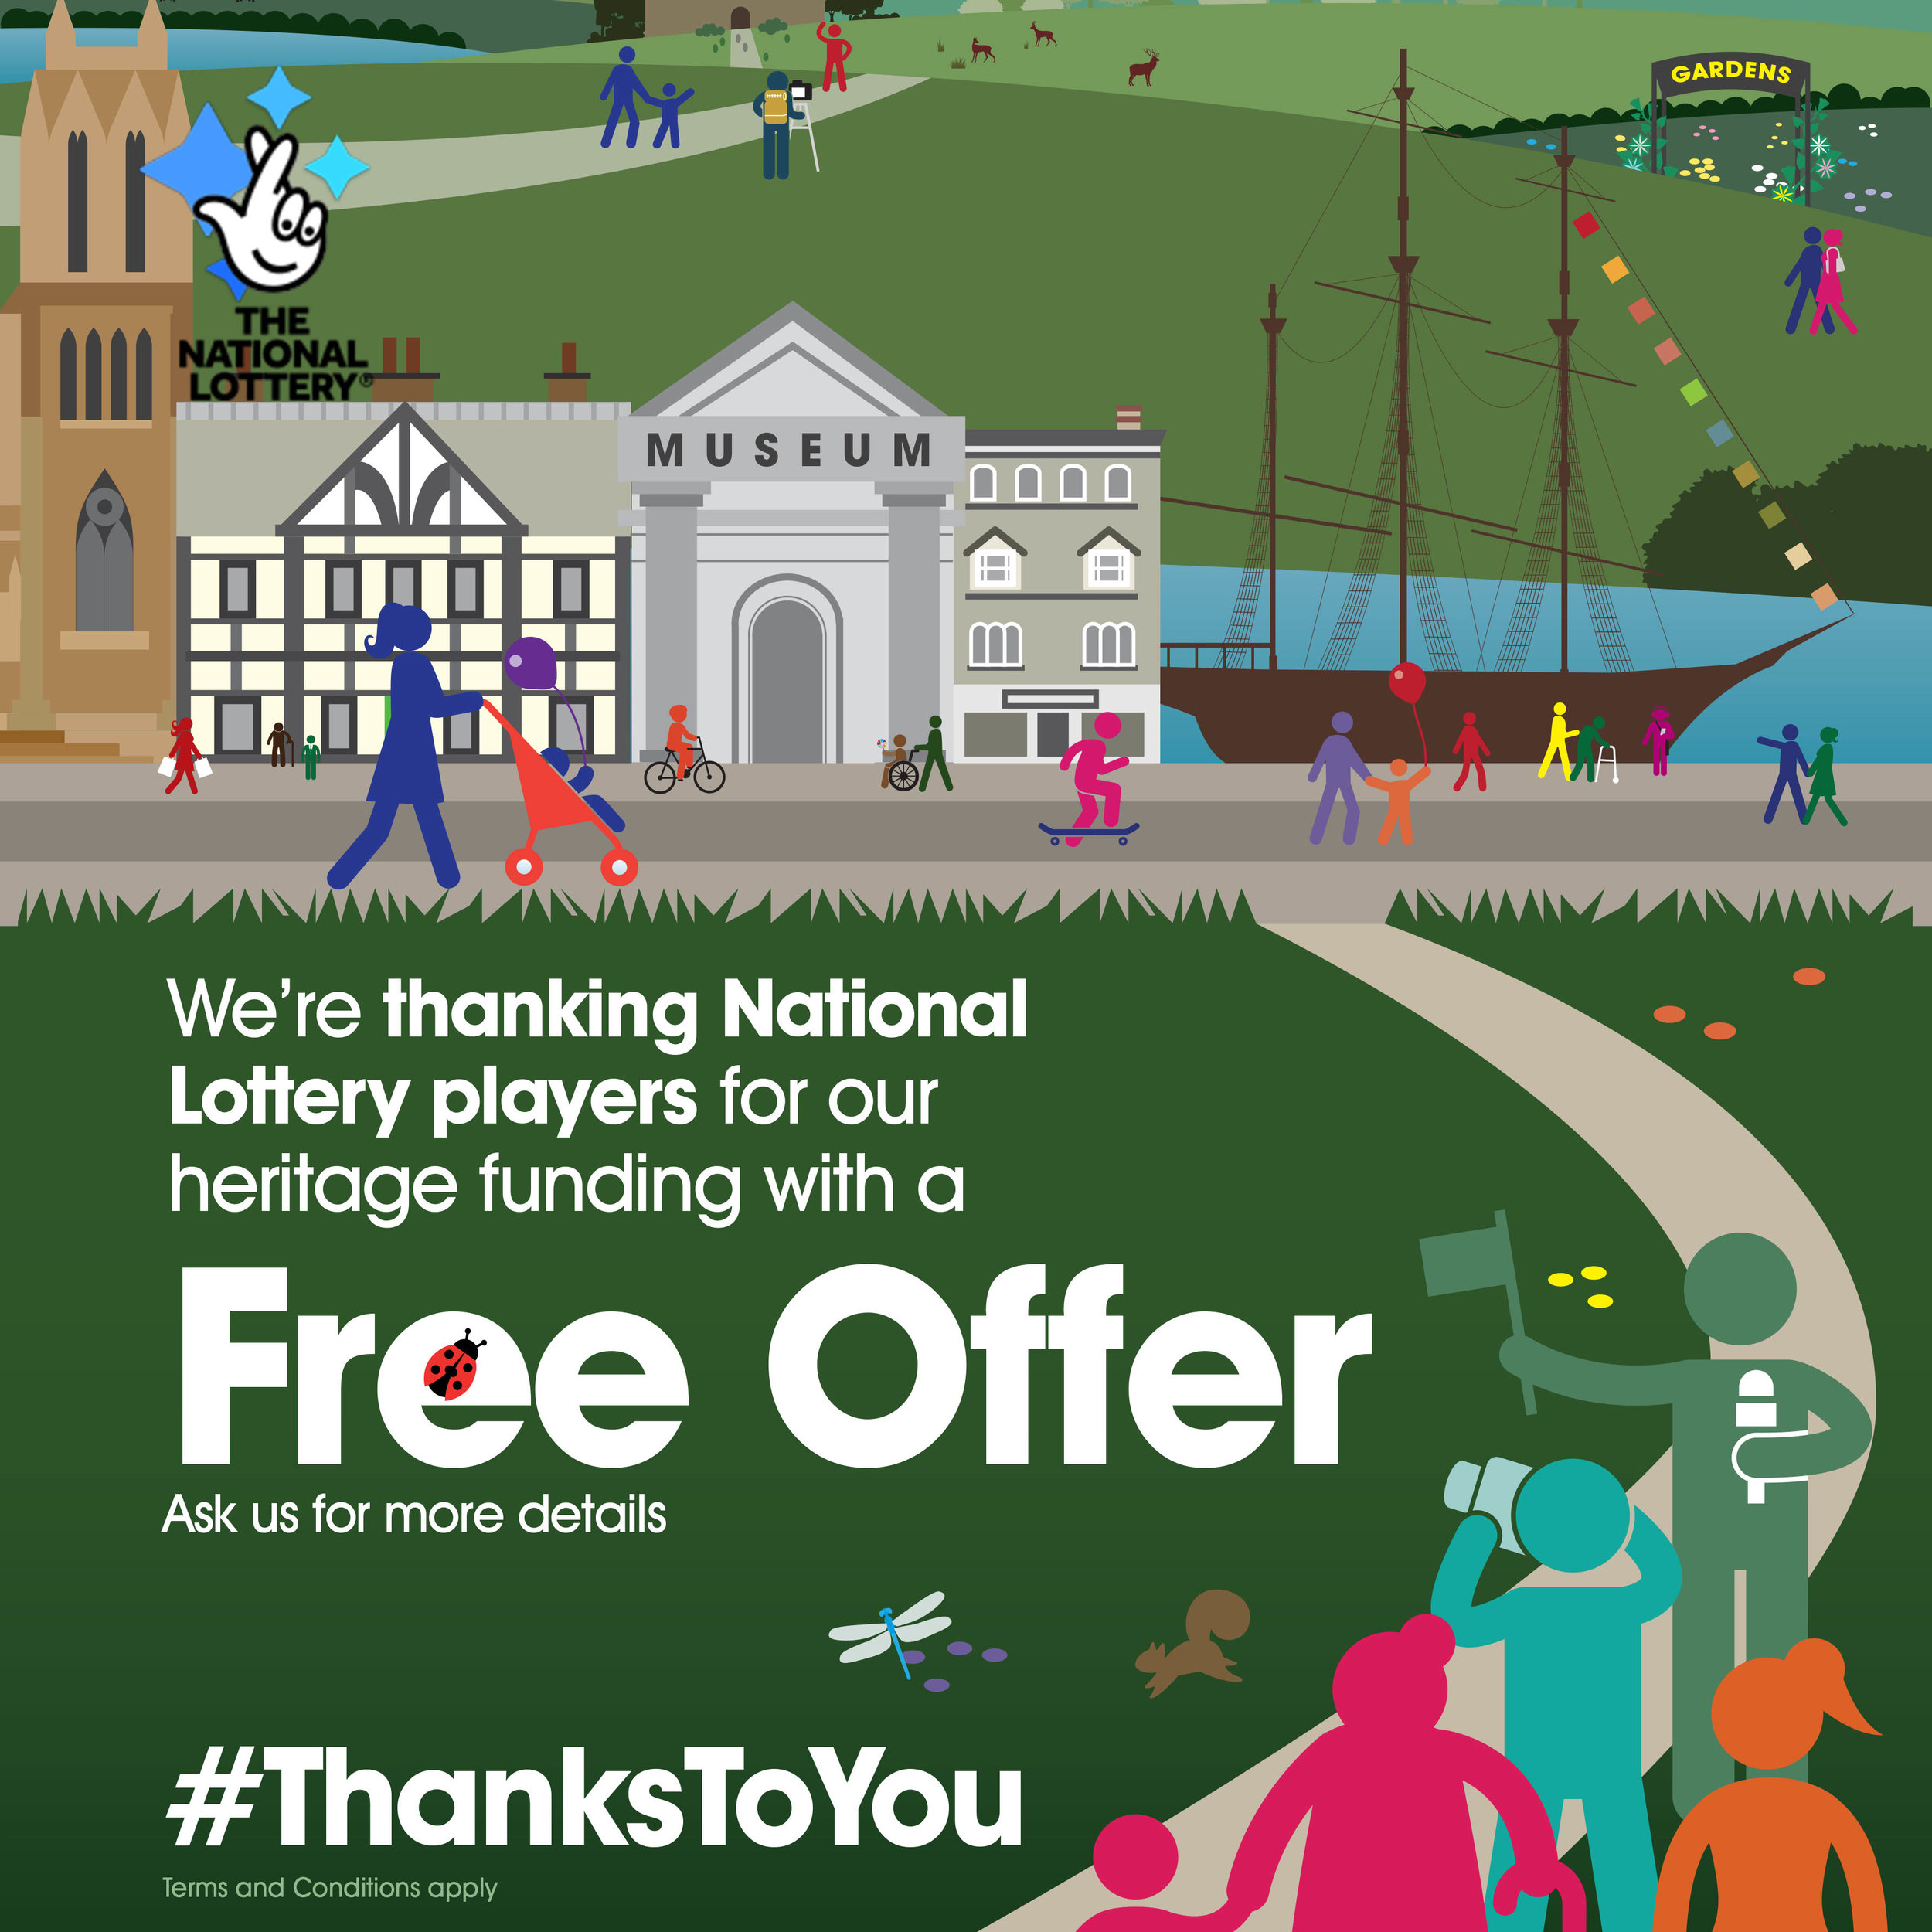 The National Lottery #thankstoyou